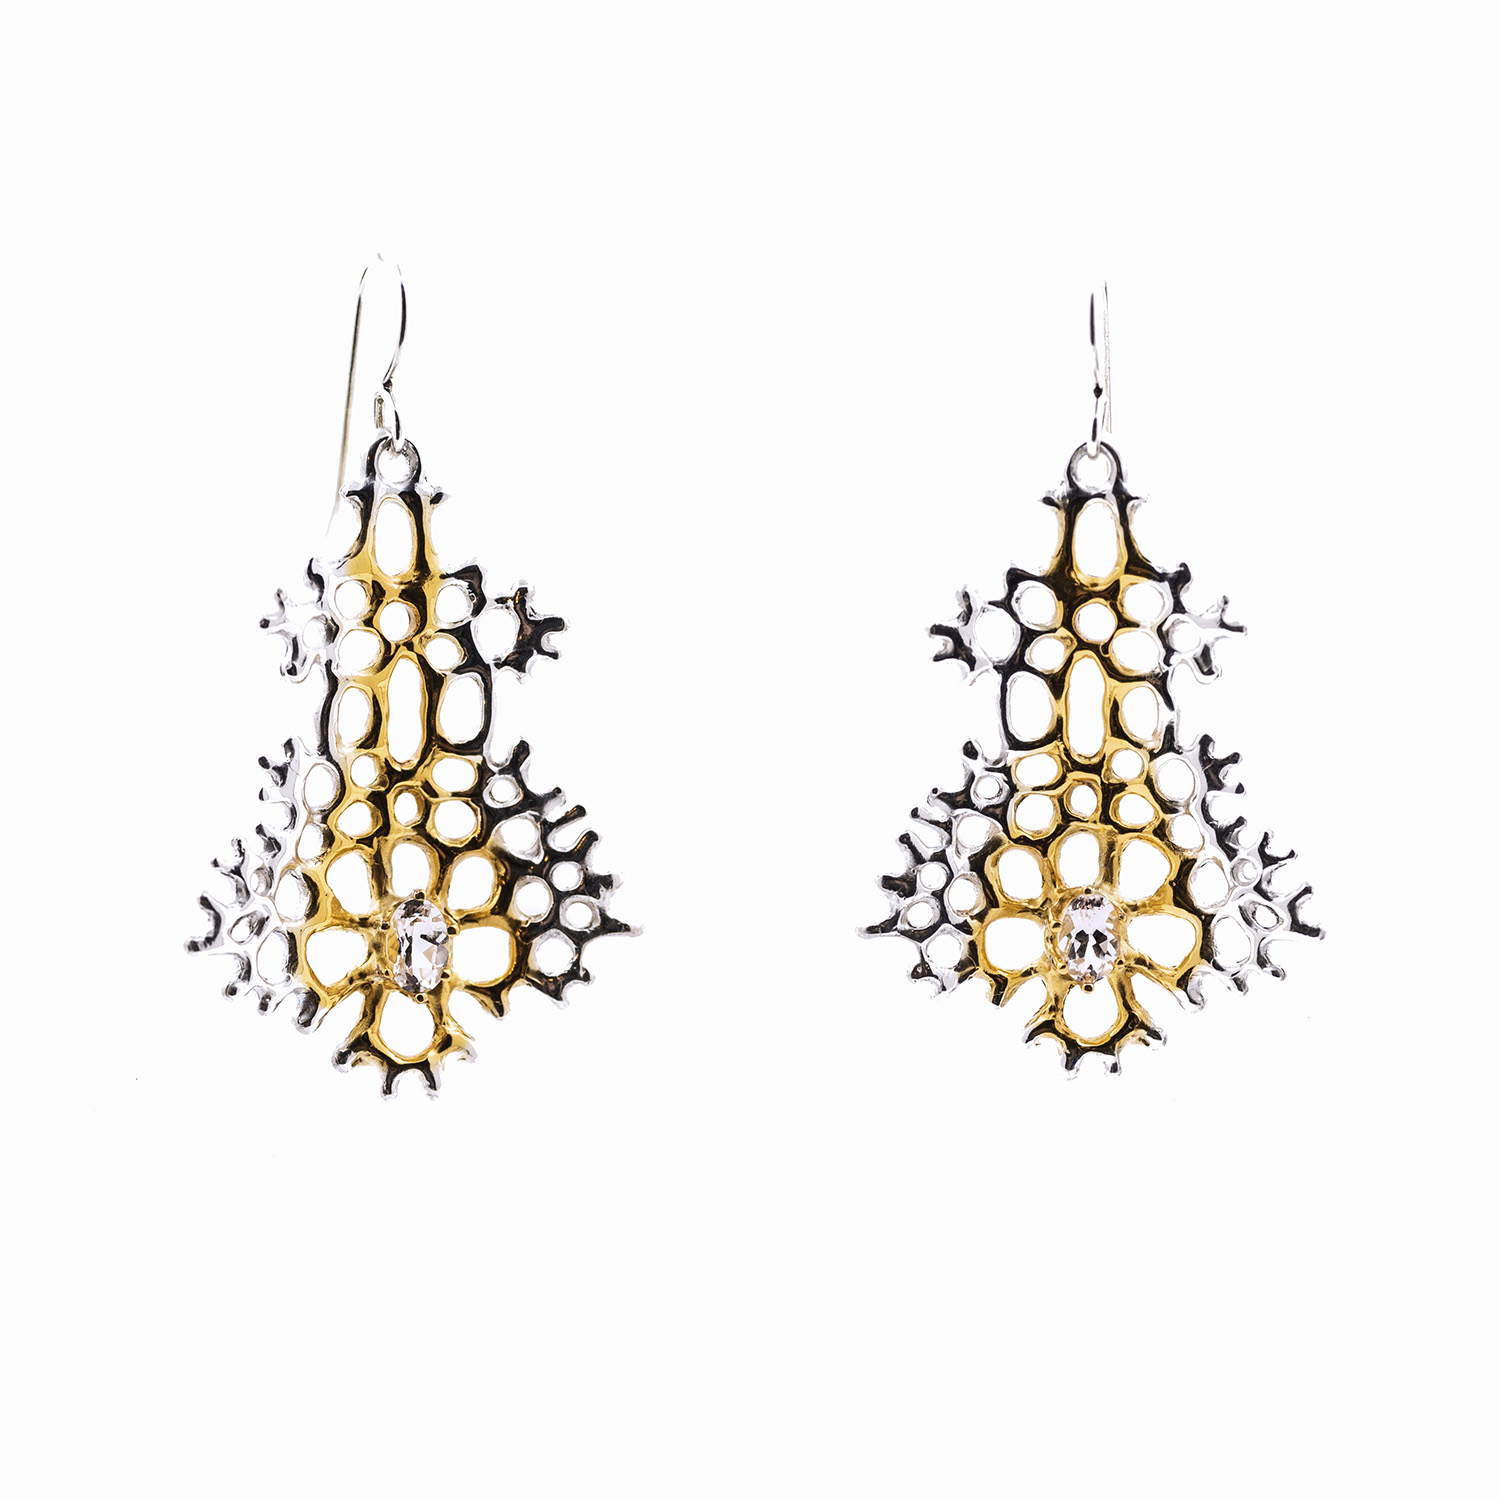 Radial Earrings : Sterling silver, morganite, gold vermeil